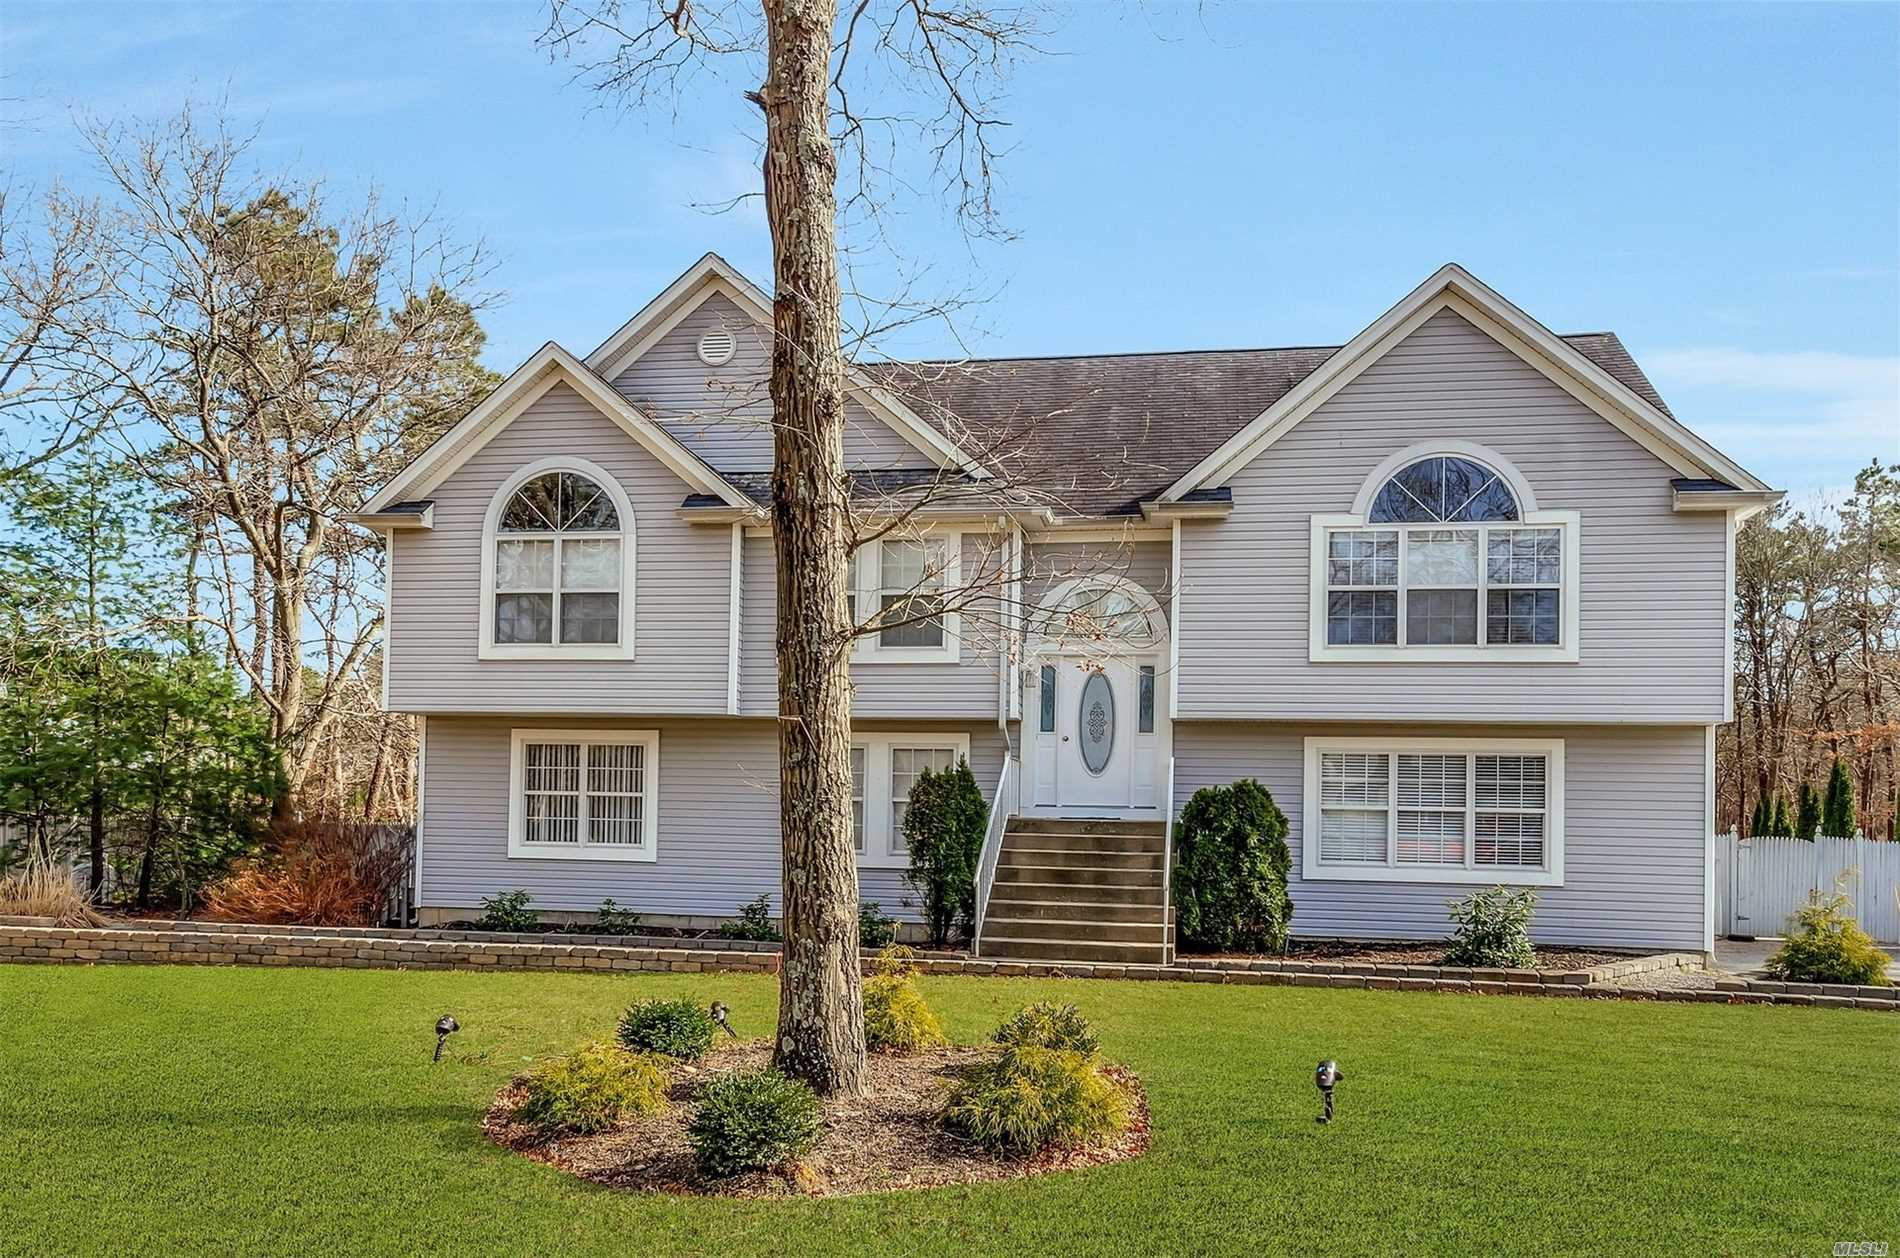 Magnificent newly built oversize hi ranch w/ full bsmnt on cul-de-sac, perfect flat 1 acre+ lot. Exp driveway w/cobblestn border, resort style backyard w/ IGP & custom pavers. Patio w/ overhang & pool house. Open floor plan, vaulted ceilings, recessed light, updated kitch w/ SS appliances, center island lots of cabinet & counter space sliding glass doors out to deck, enormous master ste w/ full bth updated hall bth w/double vanity possible first floor 2nd master, poss 2nd kitch w/separate ent.